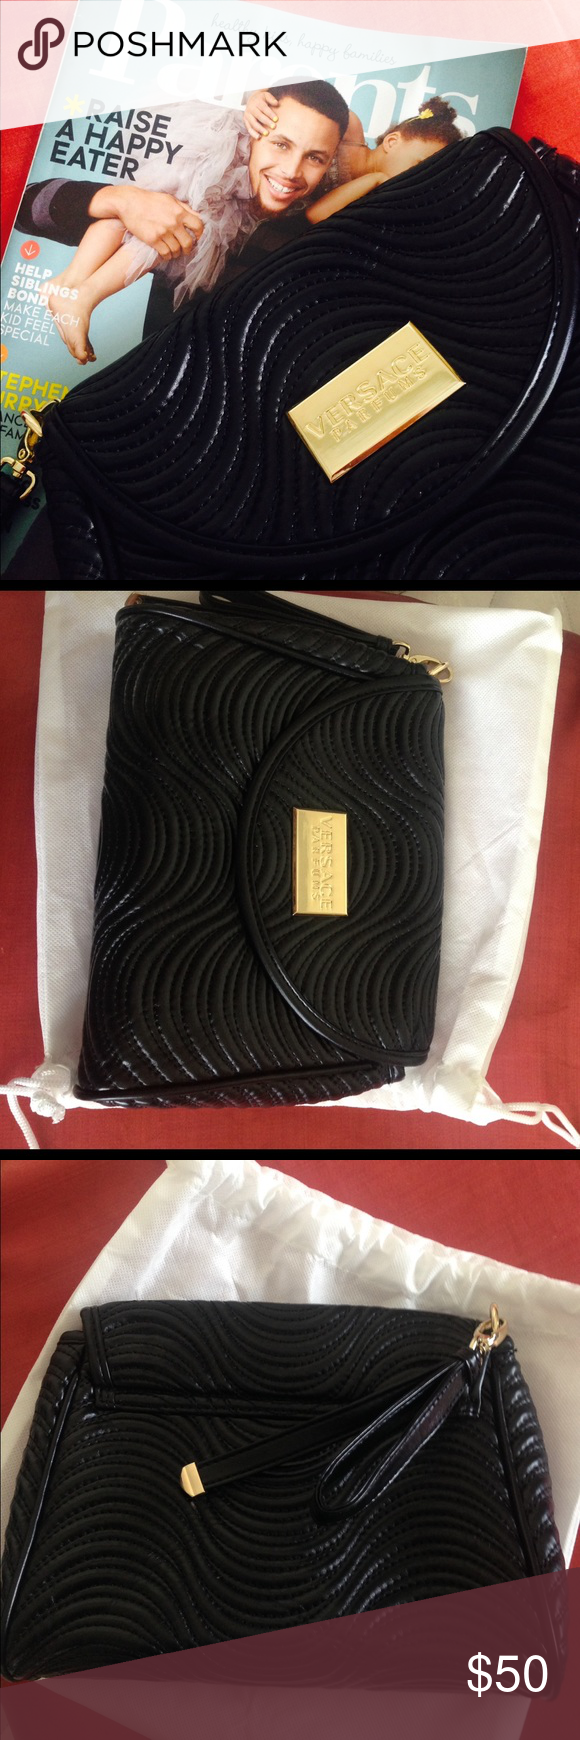 Versace perfume or cosmetic bag/clutch NWOT NWOT! Authentic Versace perfume or Cameron bag or clutch in black and gold, has one zipper pocket inside, magnet closure. Comes with a dust bag. Size is 10 by 7! Versace Bags Cosmetic Bags & Cases